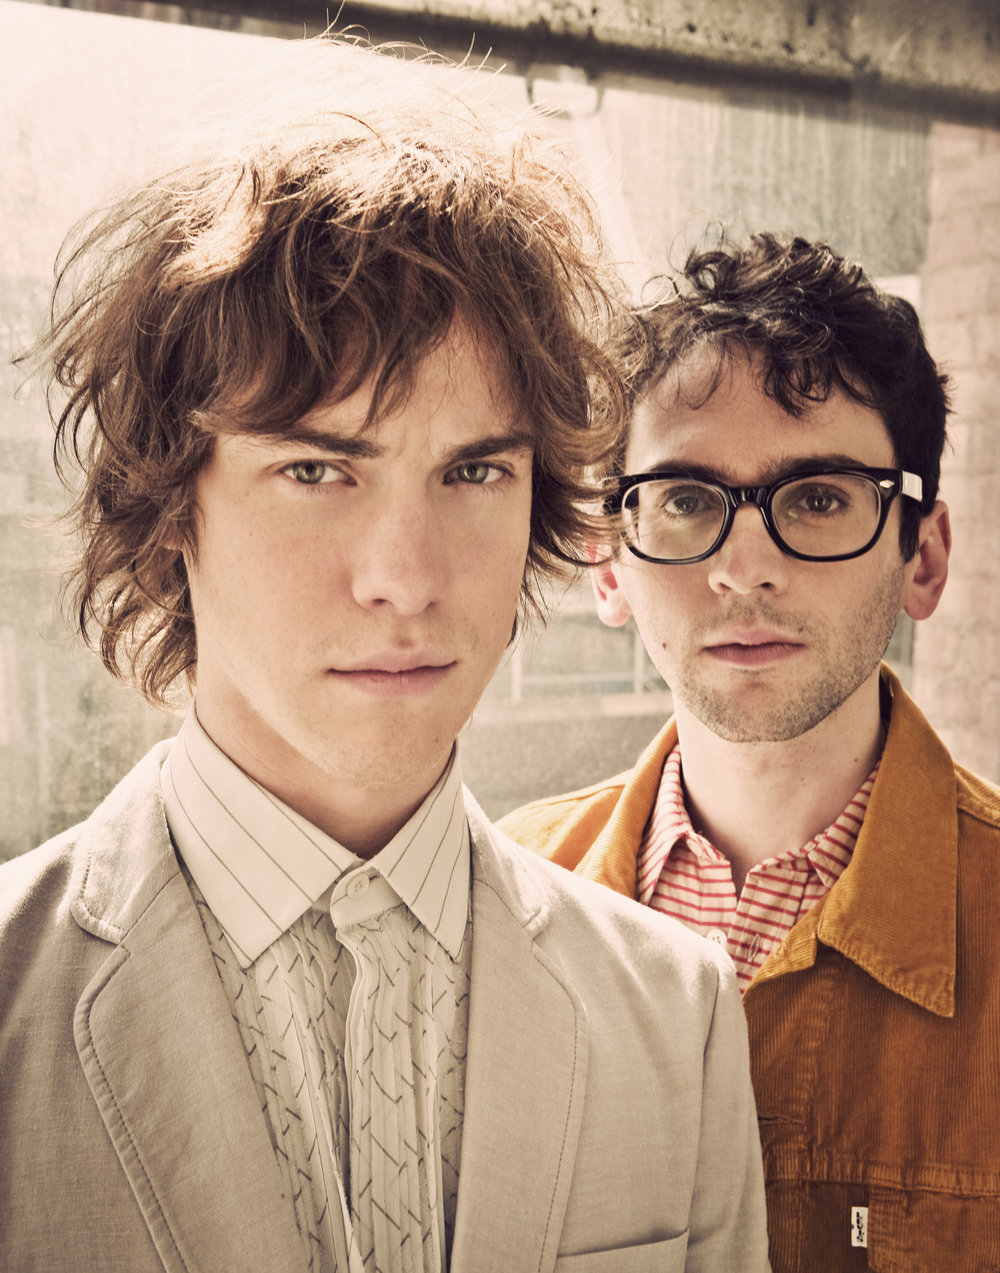 MGMT, New York City, 2009